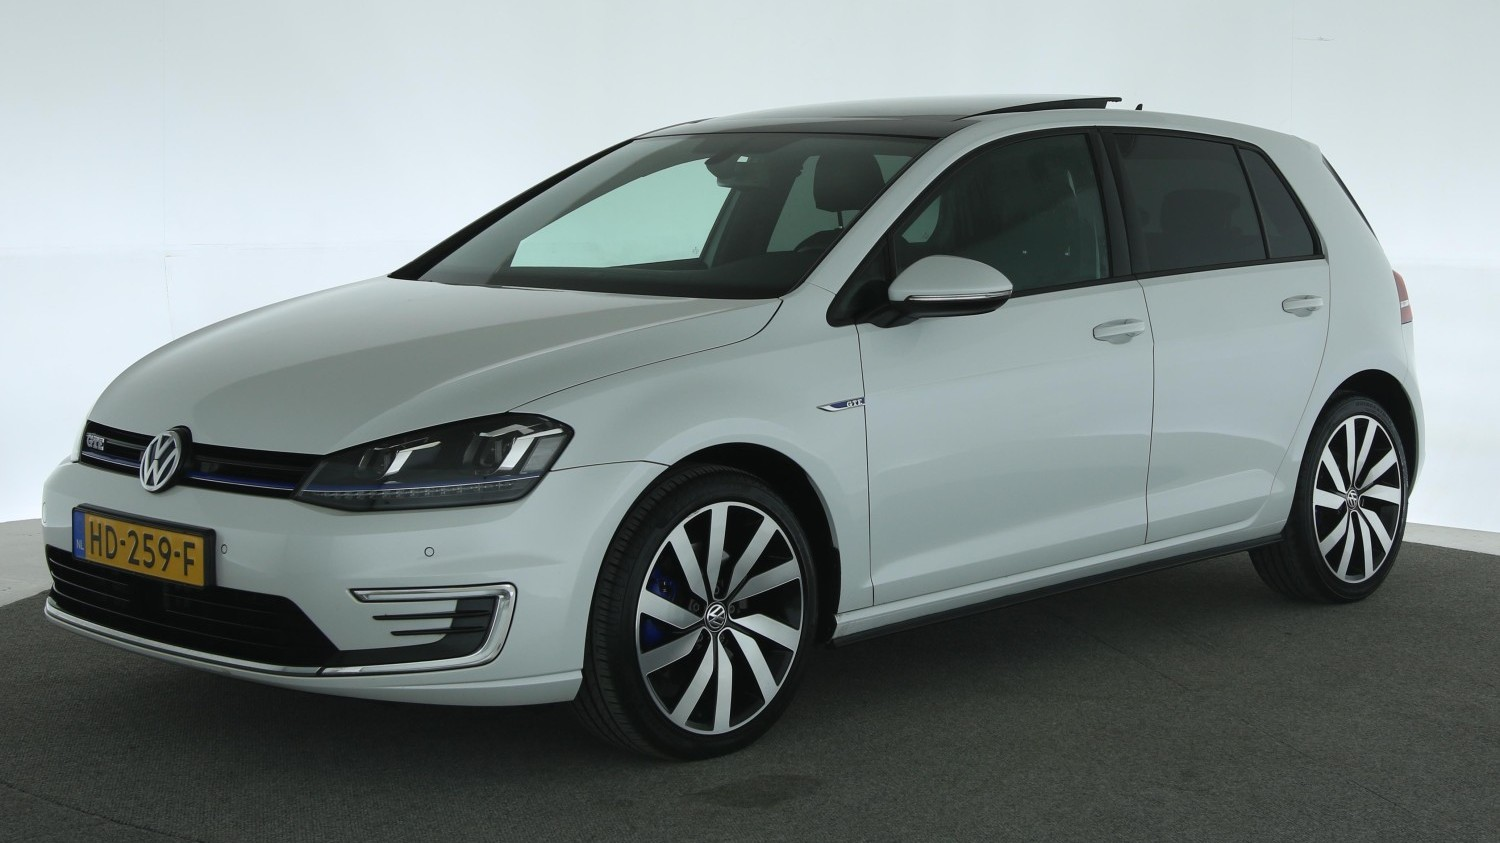 Volkswagen Golf Hatchback 2015 HD-259-F 1